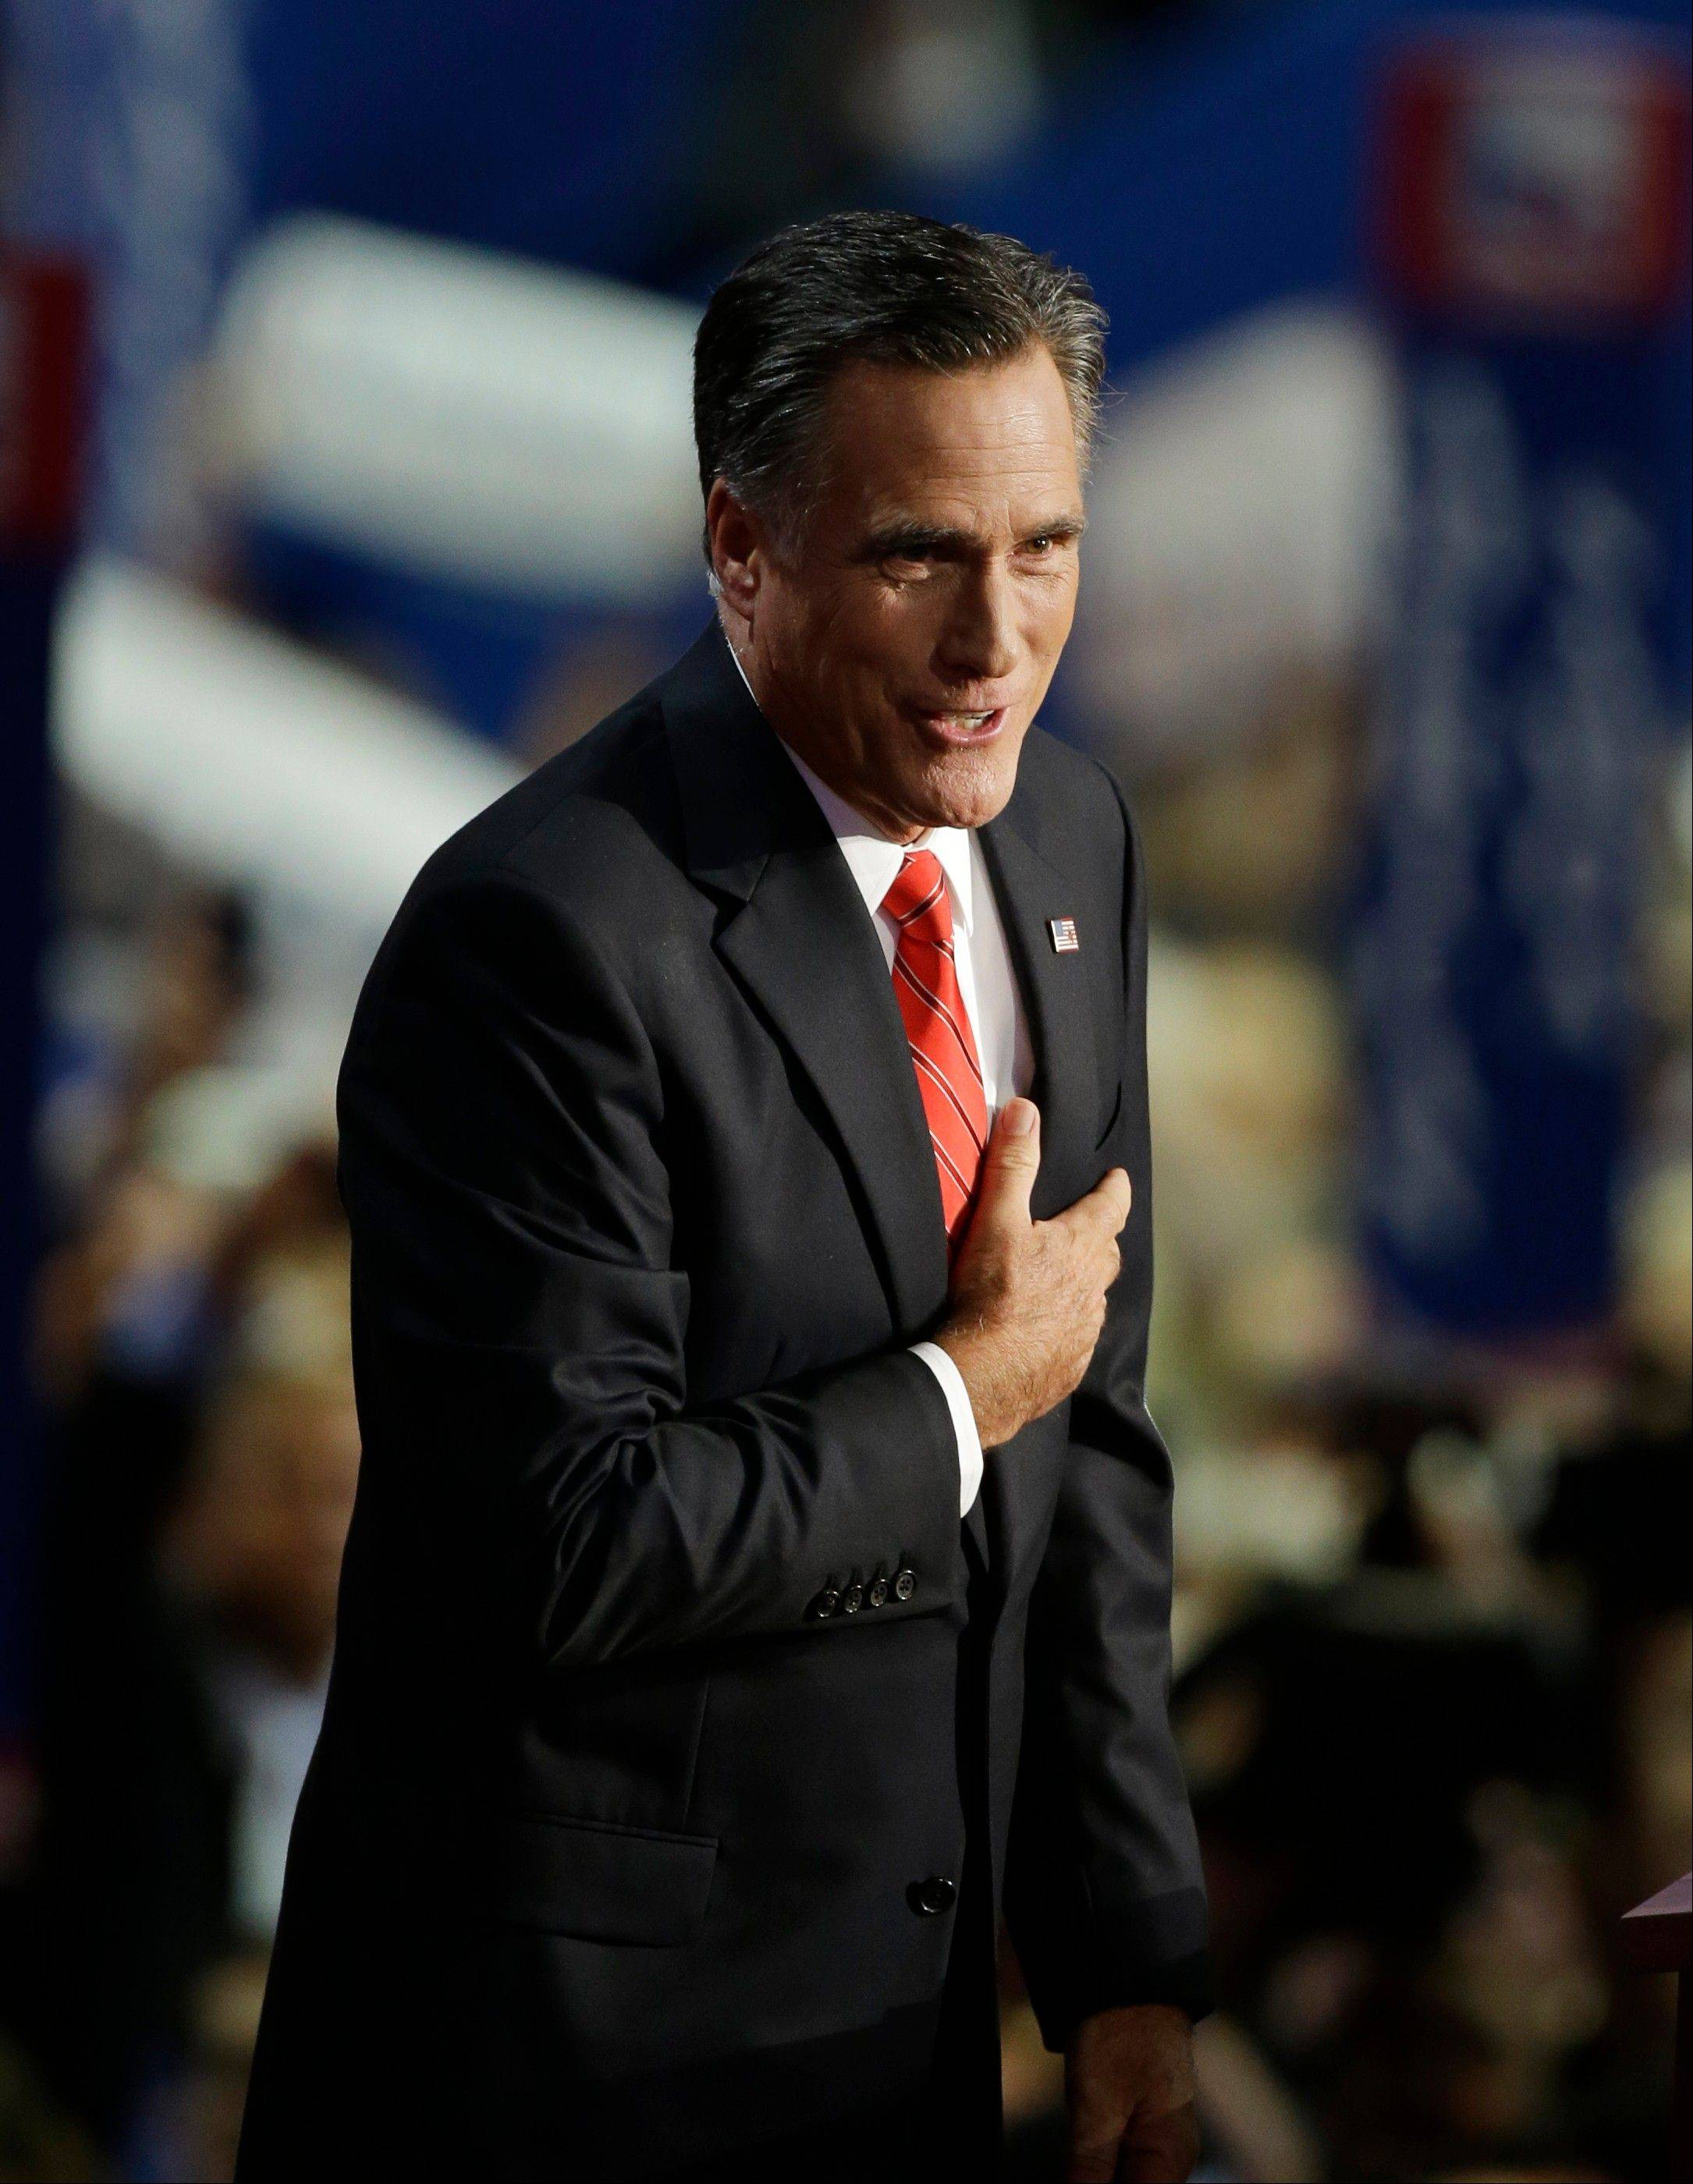 Mitt Romney accepts the nomination as the Republican candidate for U.S. president during the Republican National Convention in Tampa, Fla., on Thursday, Aug. 30, 2012.